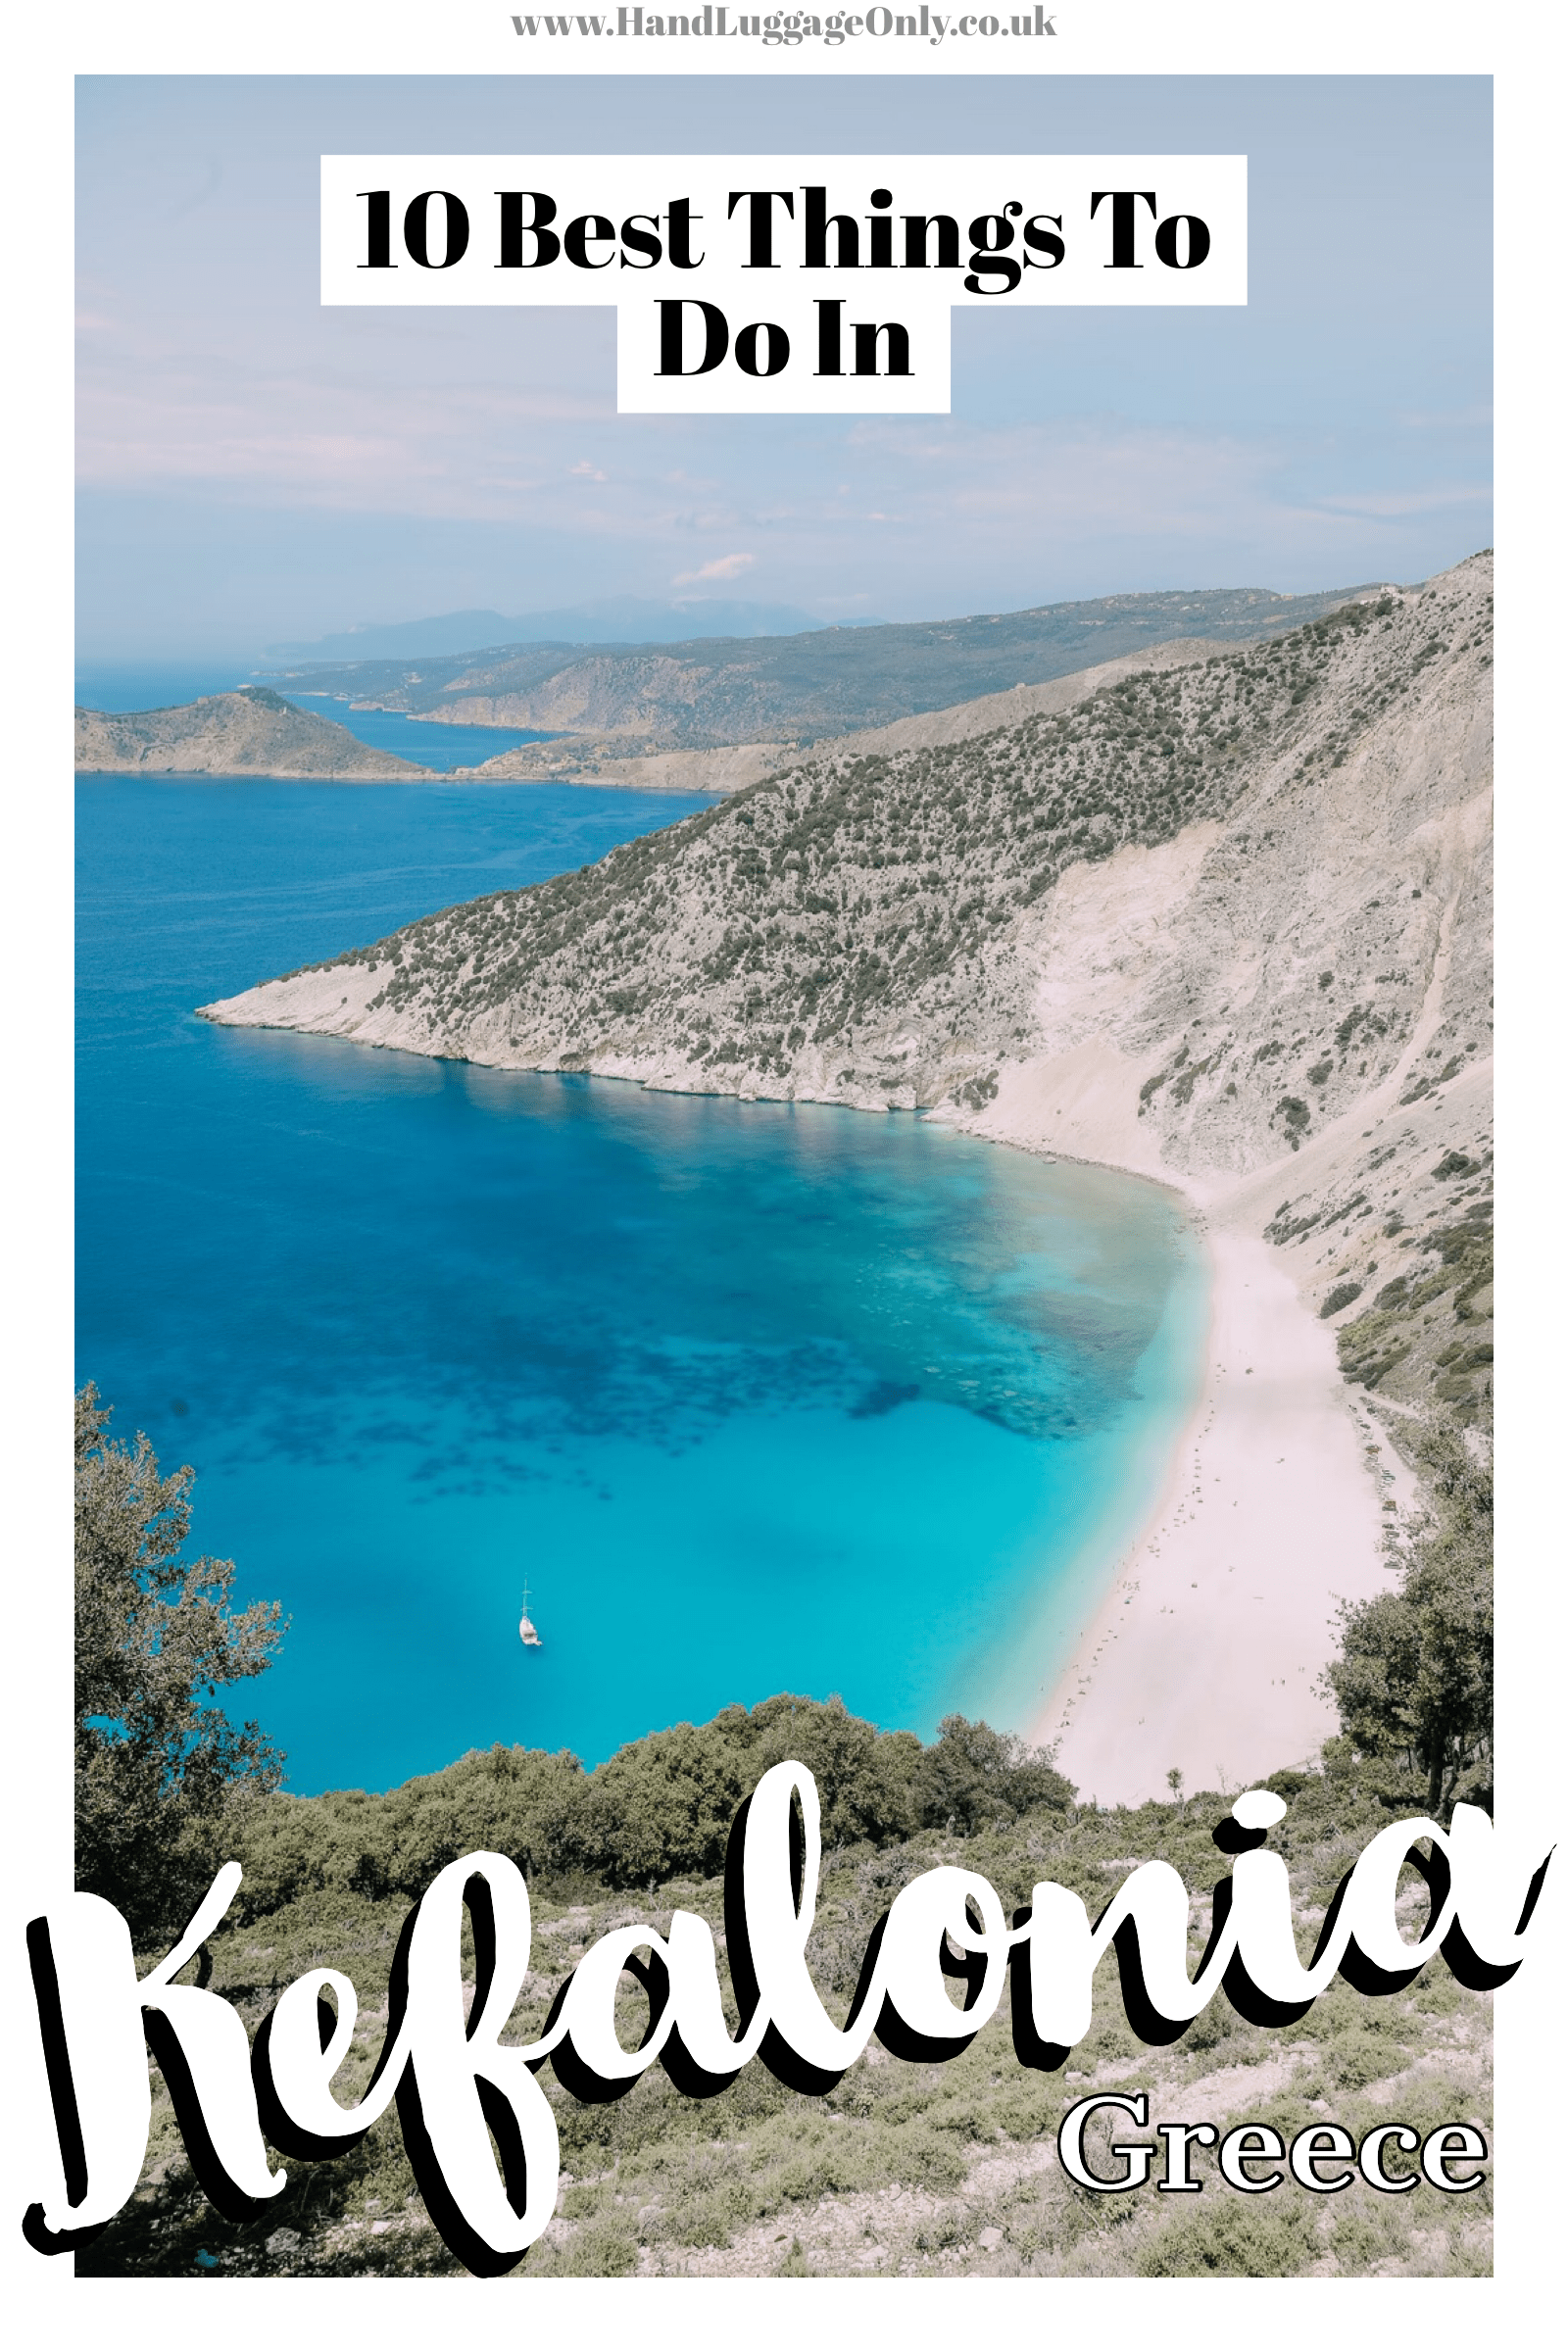 Best Things To Do In Kefalonia (1)